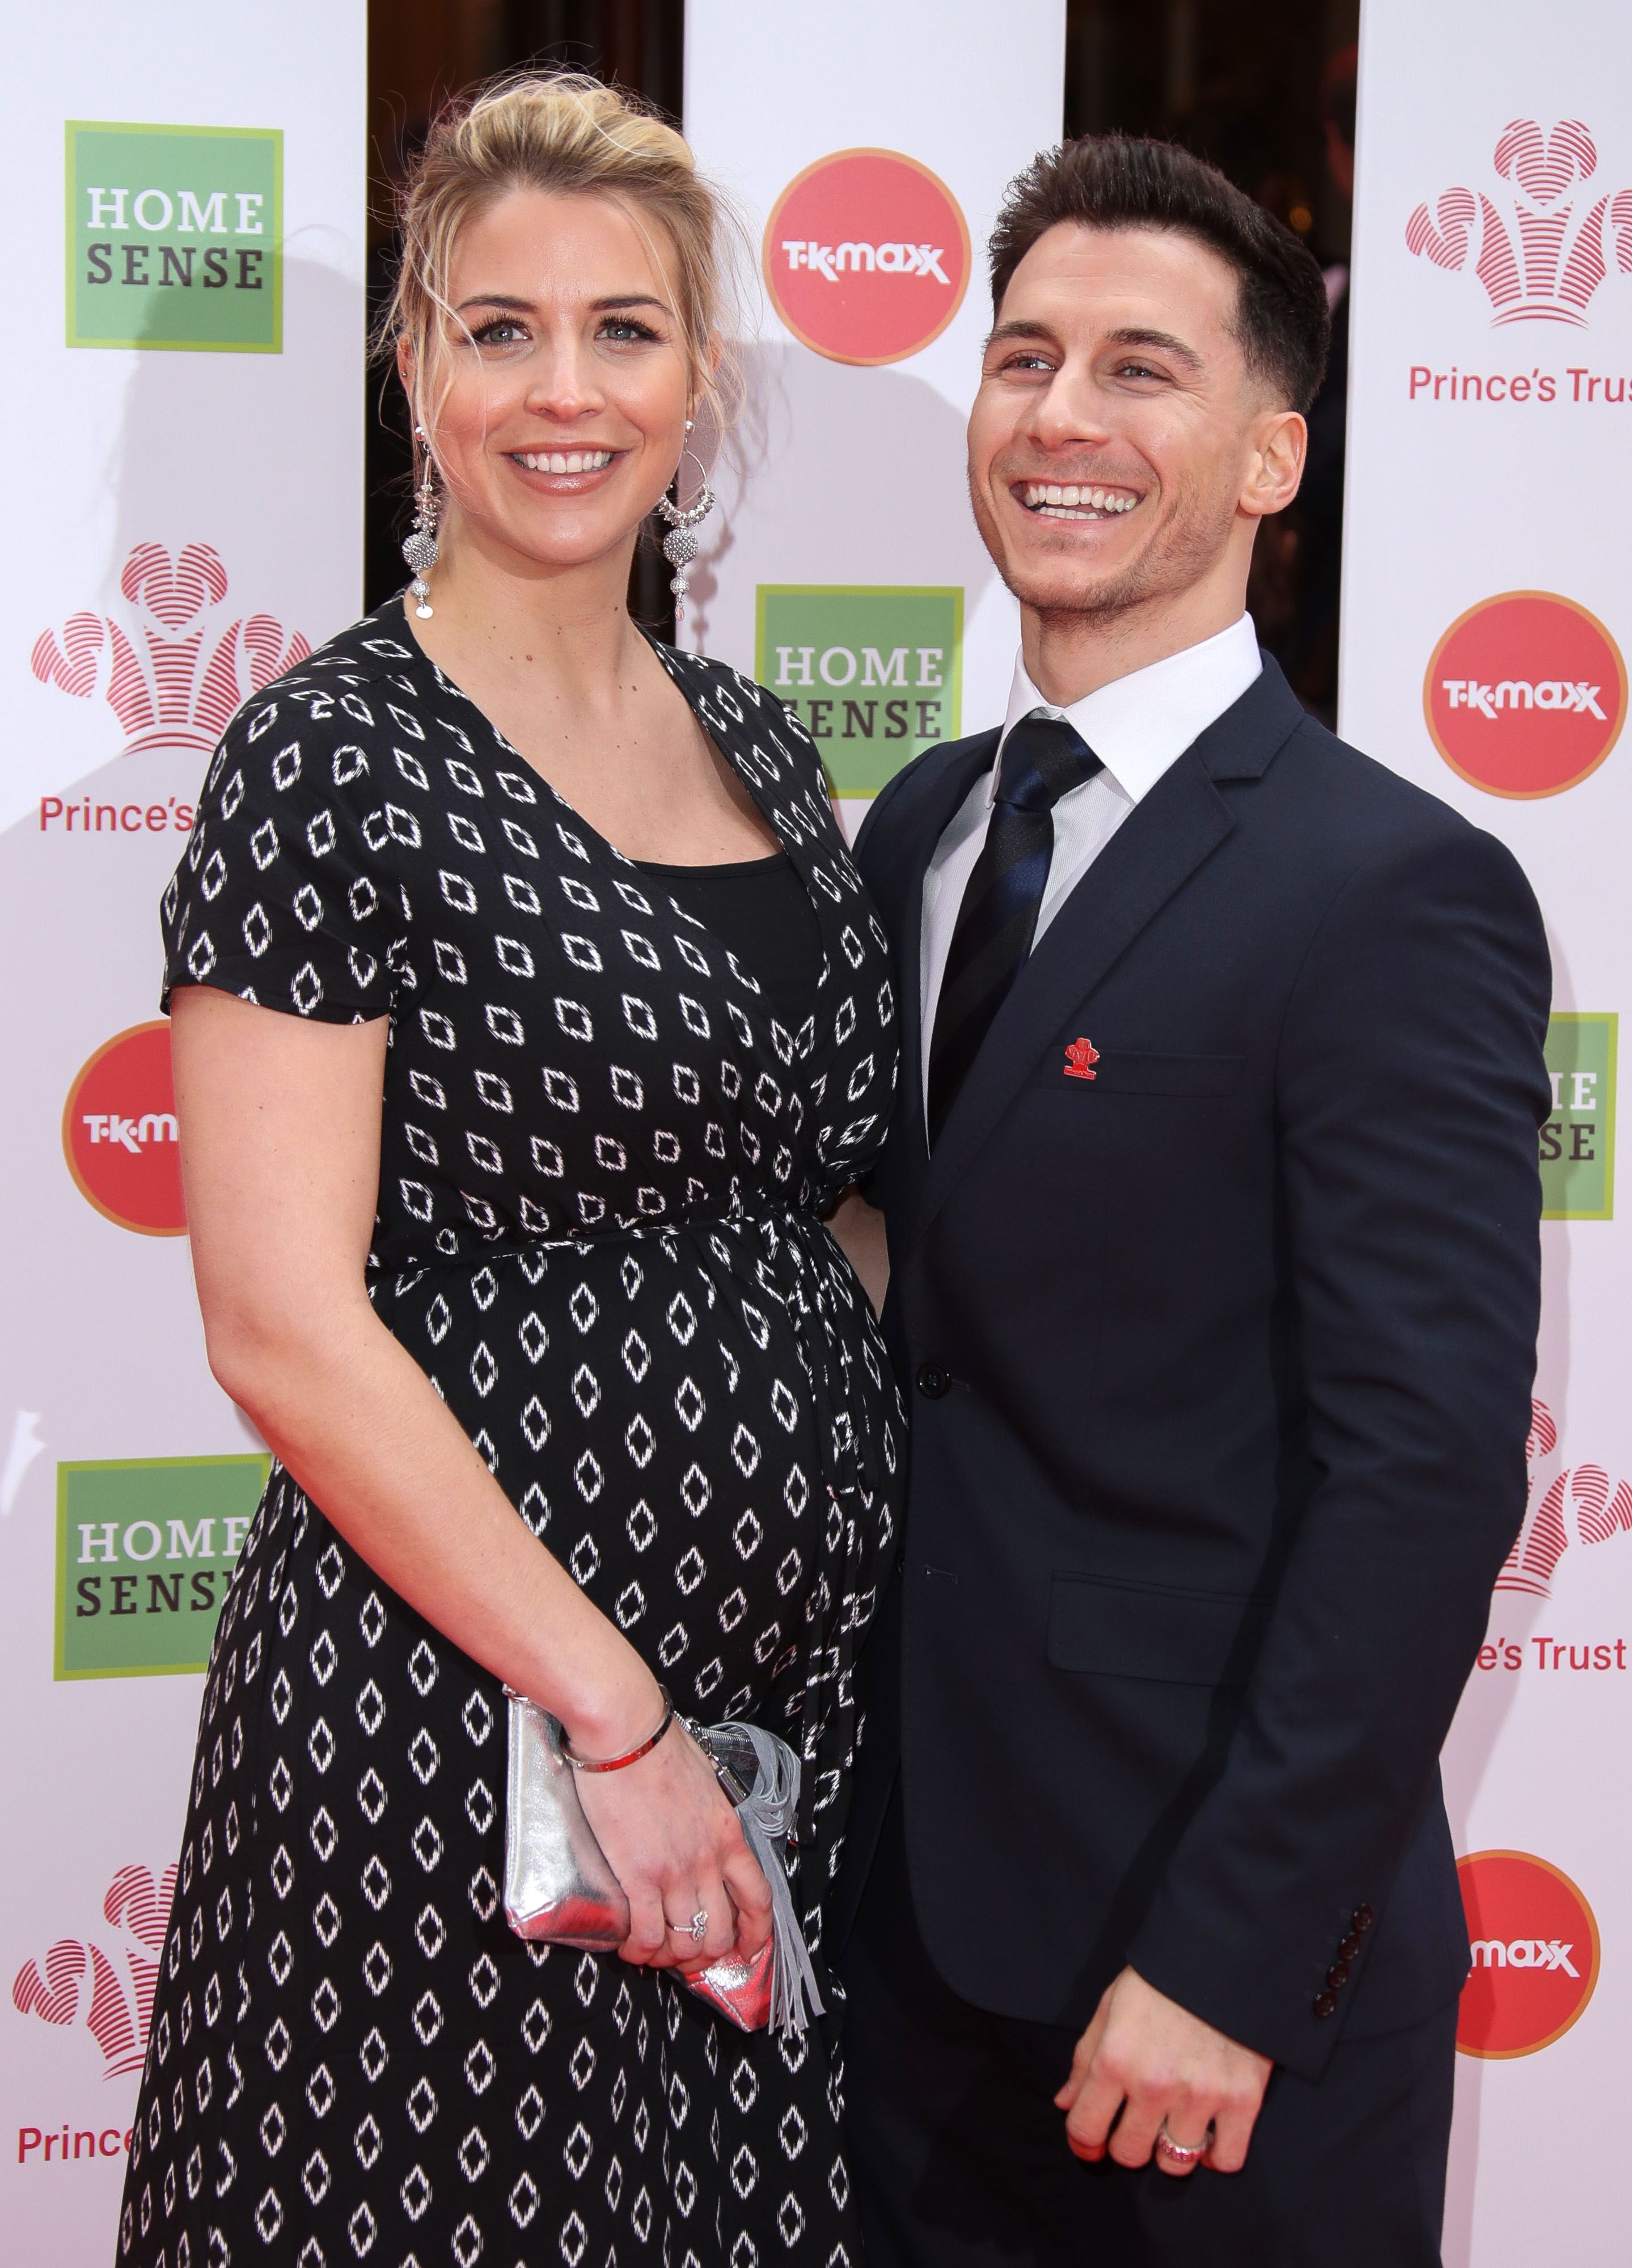 Gemma Atkinson reacts to Gorka's new Strictly Come Dancing role